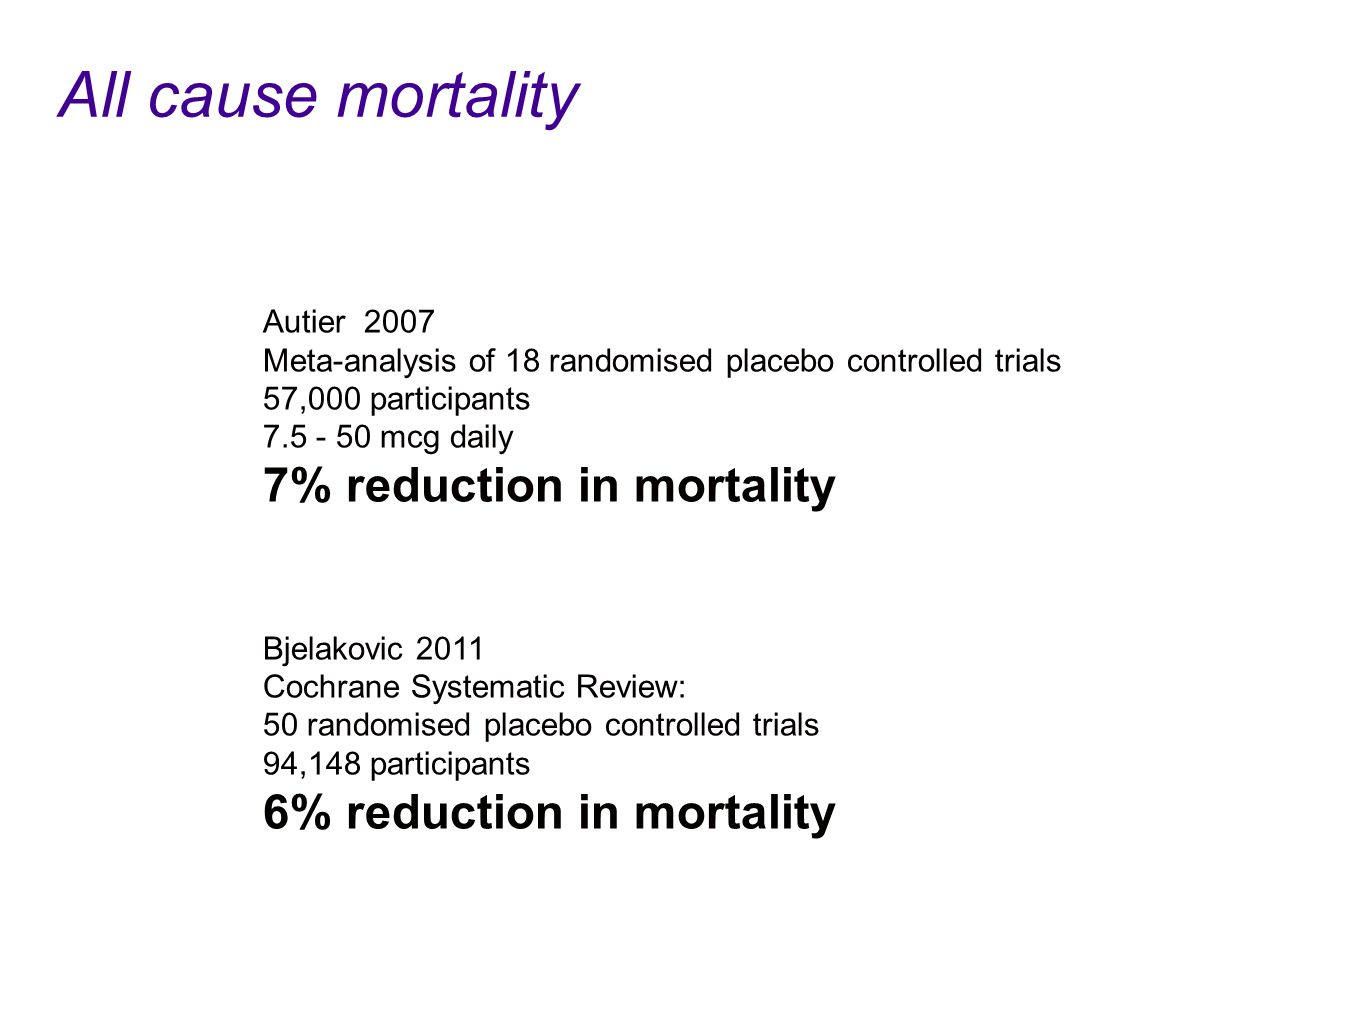 Autier 2007 Meta-analysis of 18 randomised placebo controlled trials 57,000 participants mcg daily 7% reduction in mortality Bjelakovic 2011 Cochrane Systematic Review: 50 randomised placebo controlled trials 94,148 participants 6% reduction in mortality All cause mortality